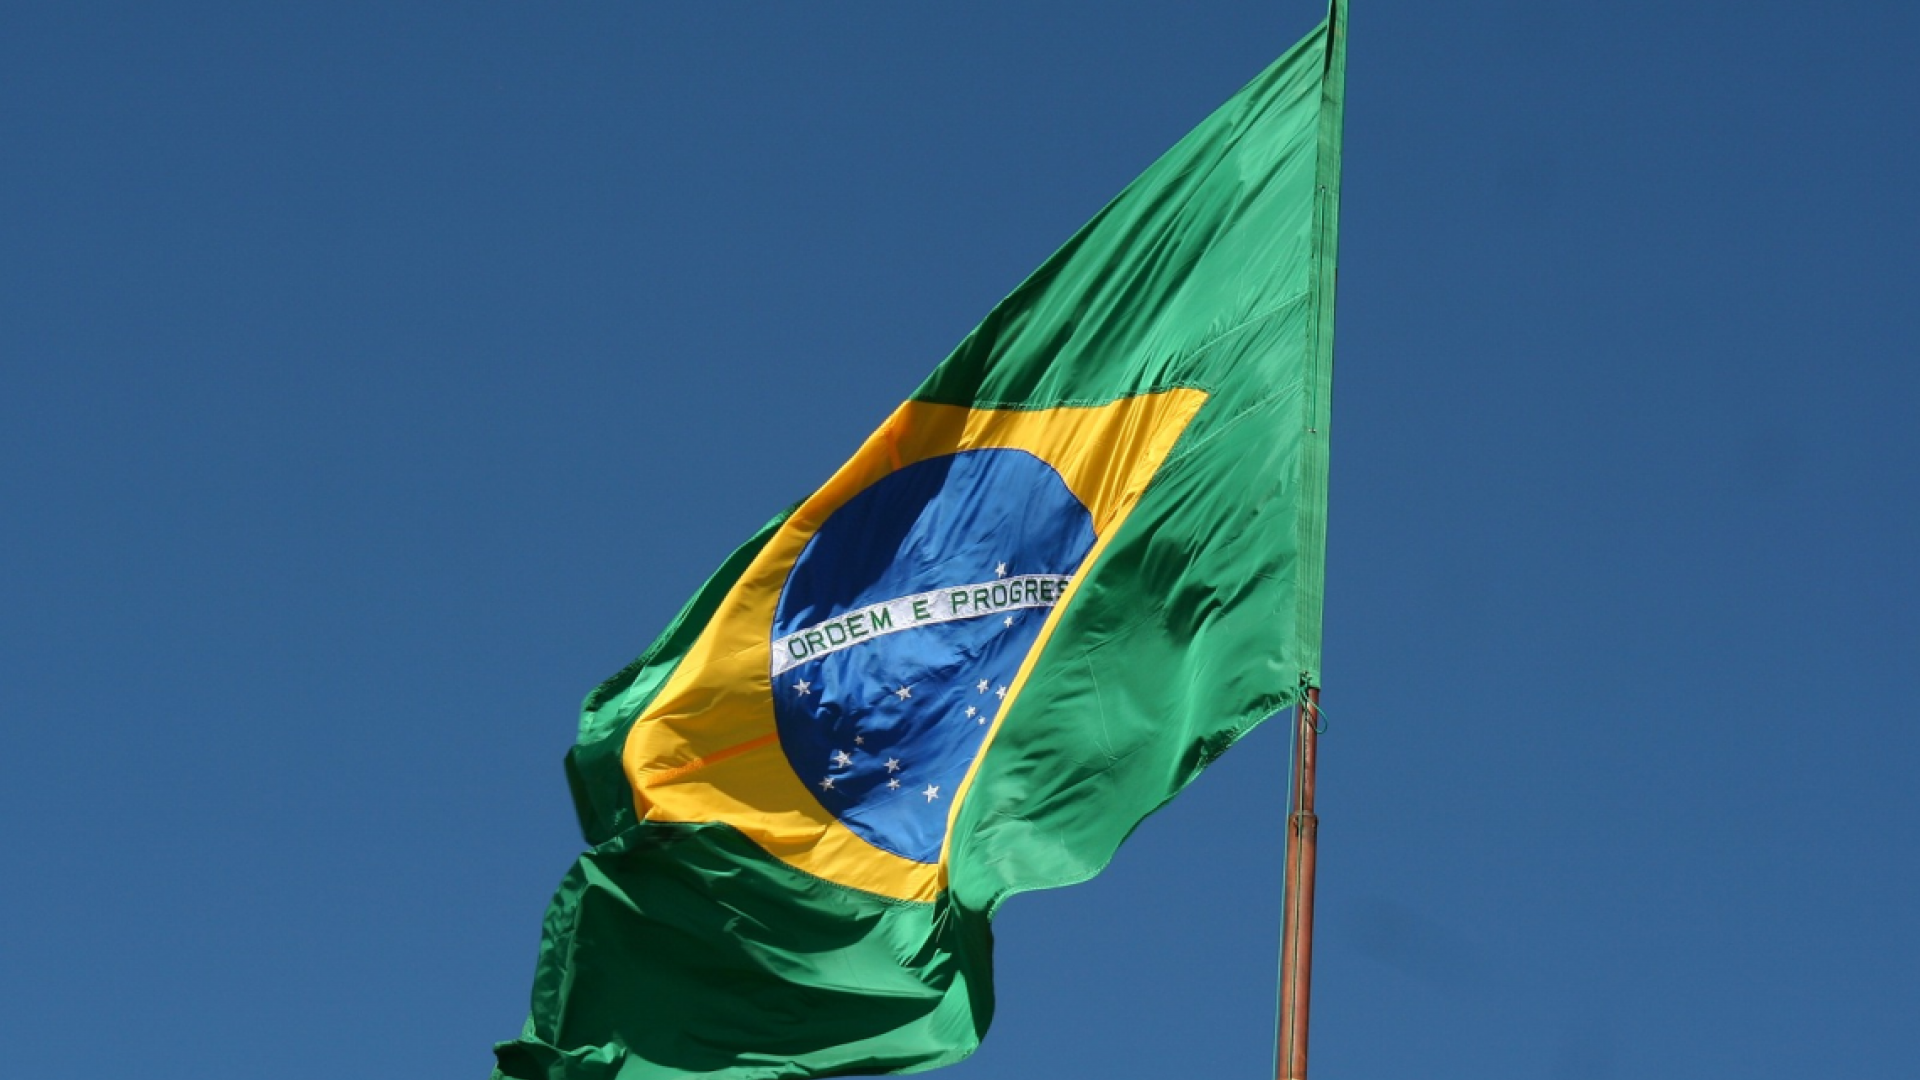 IAEA to Assist Brazil on Nuclear Security at 2016 Olympic